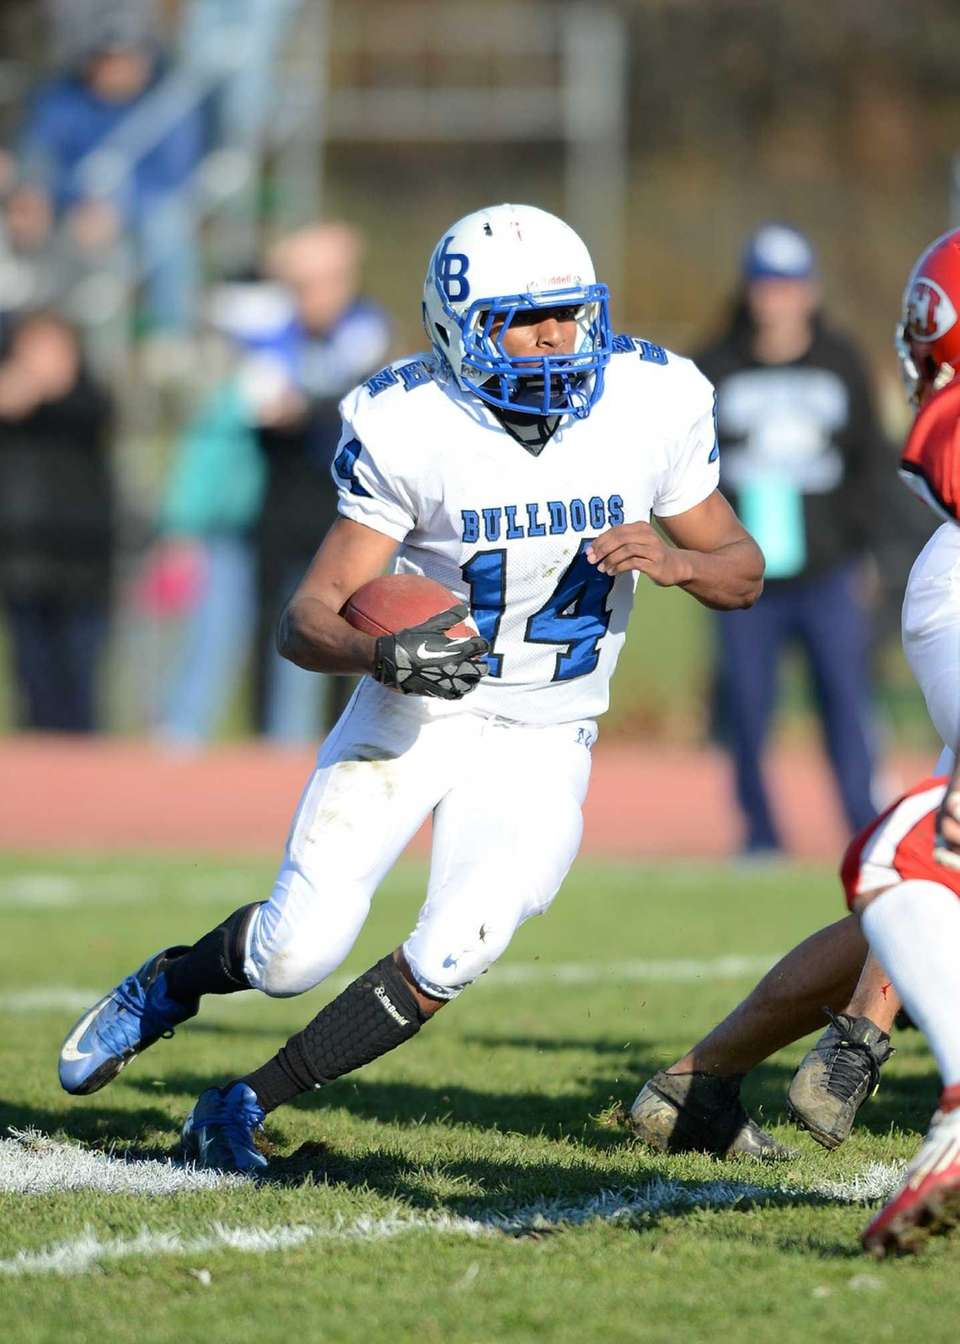 North Babylon's Melijah Pervis makes a cut to